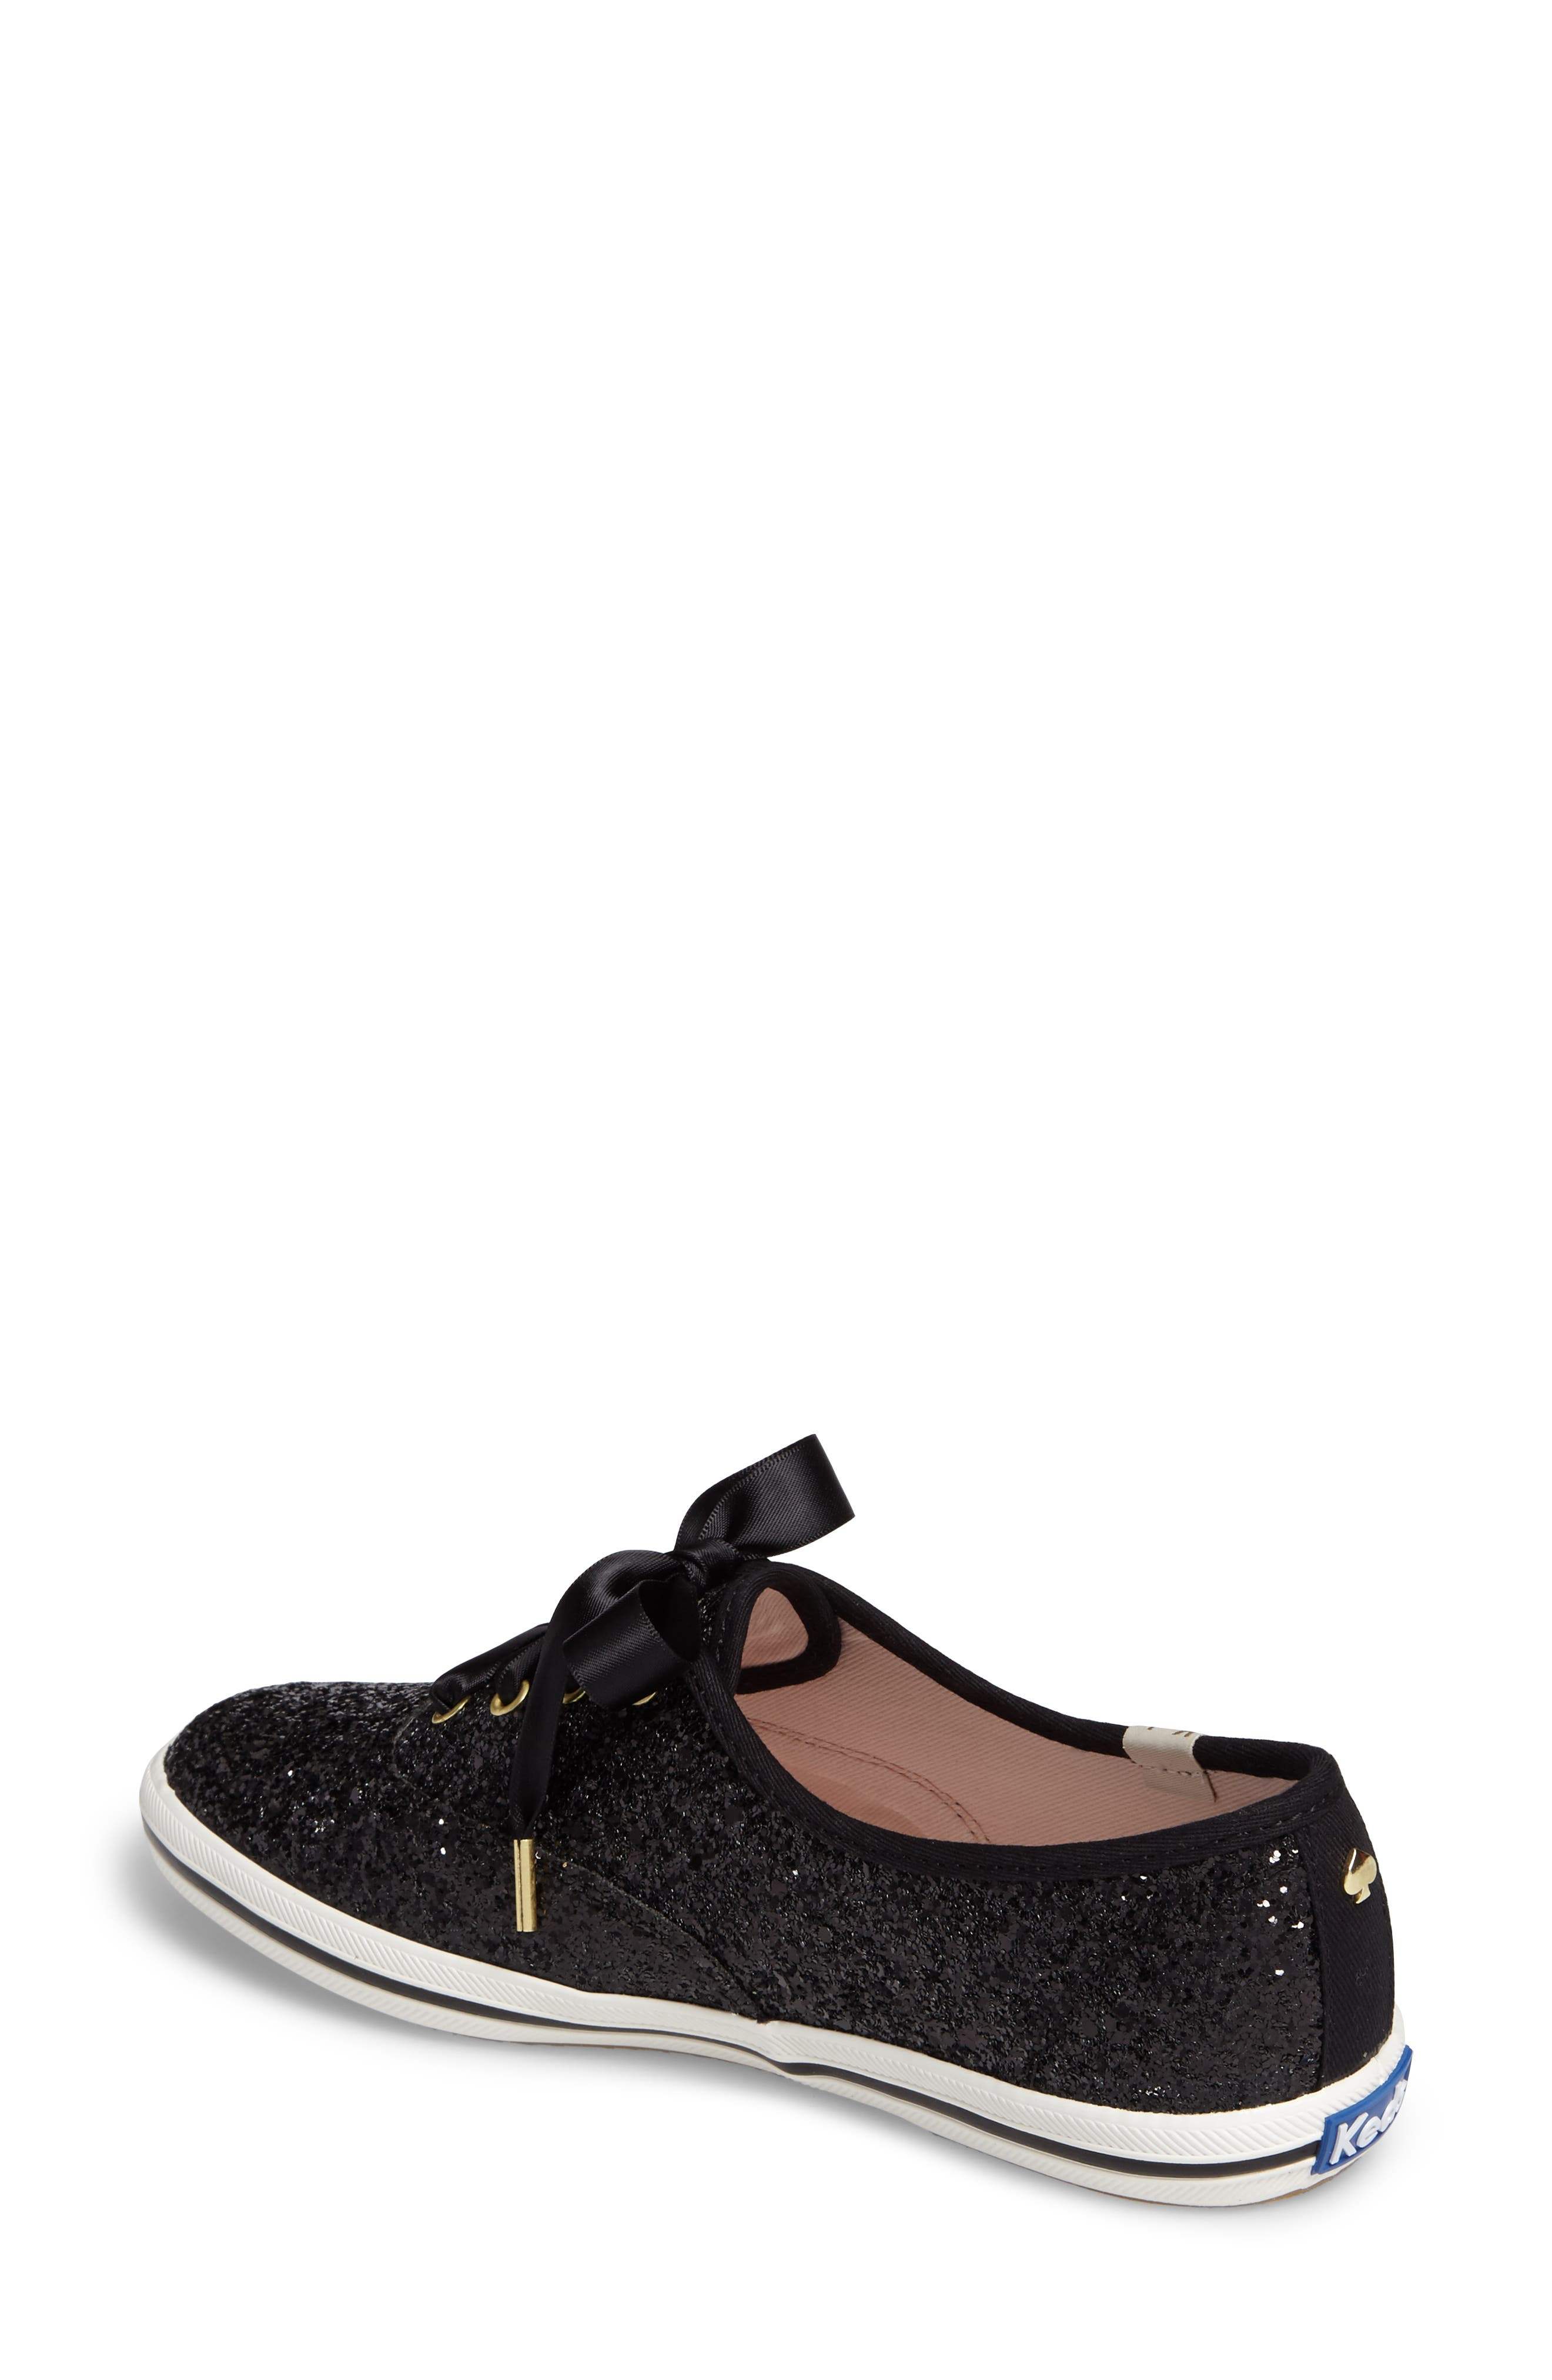 KEDS<SUP>®</SUP> FOR KATE SPADE NEW YORK, glitter sneaker, Alternate thumbnail 2, color, BLACK